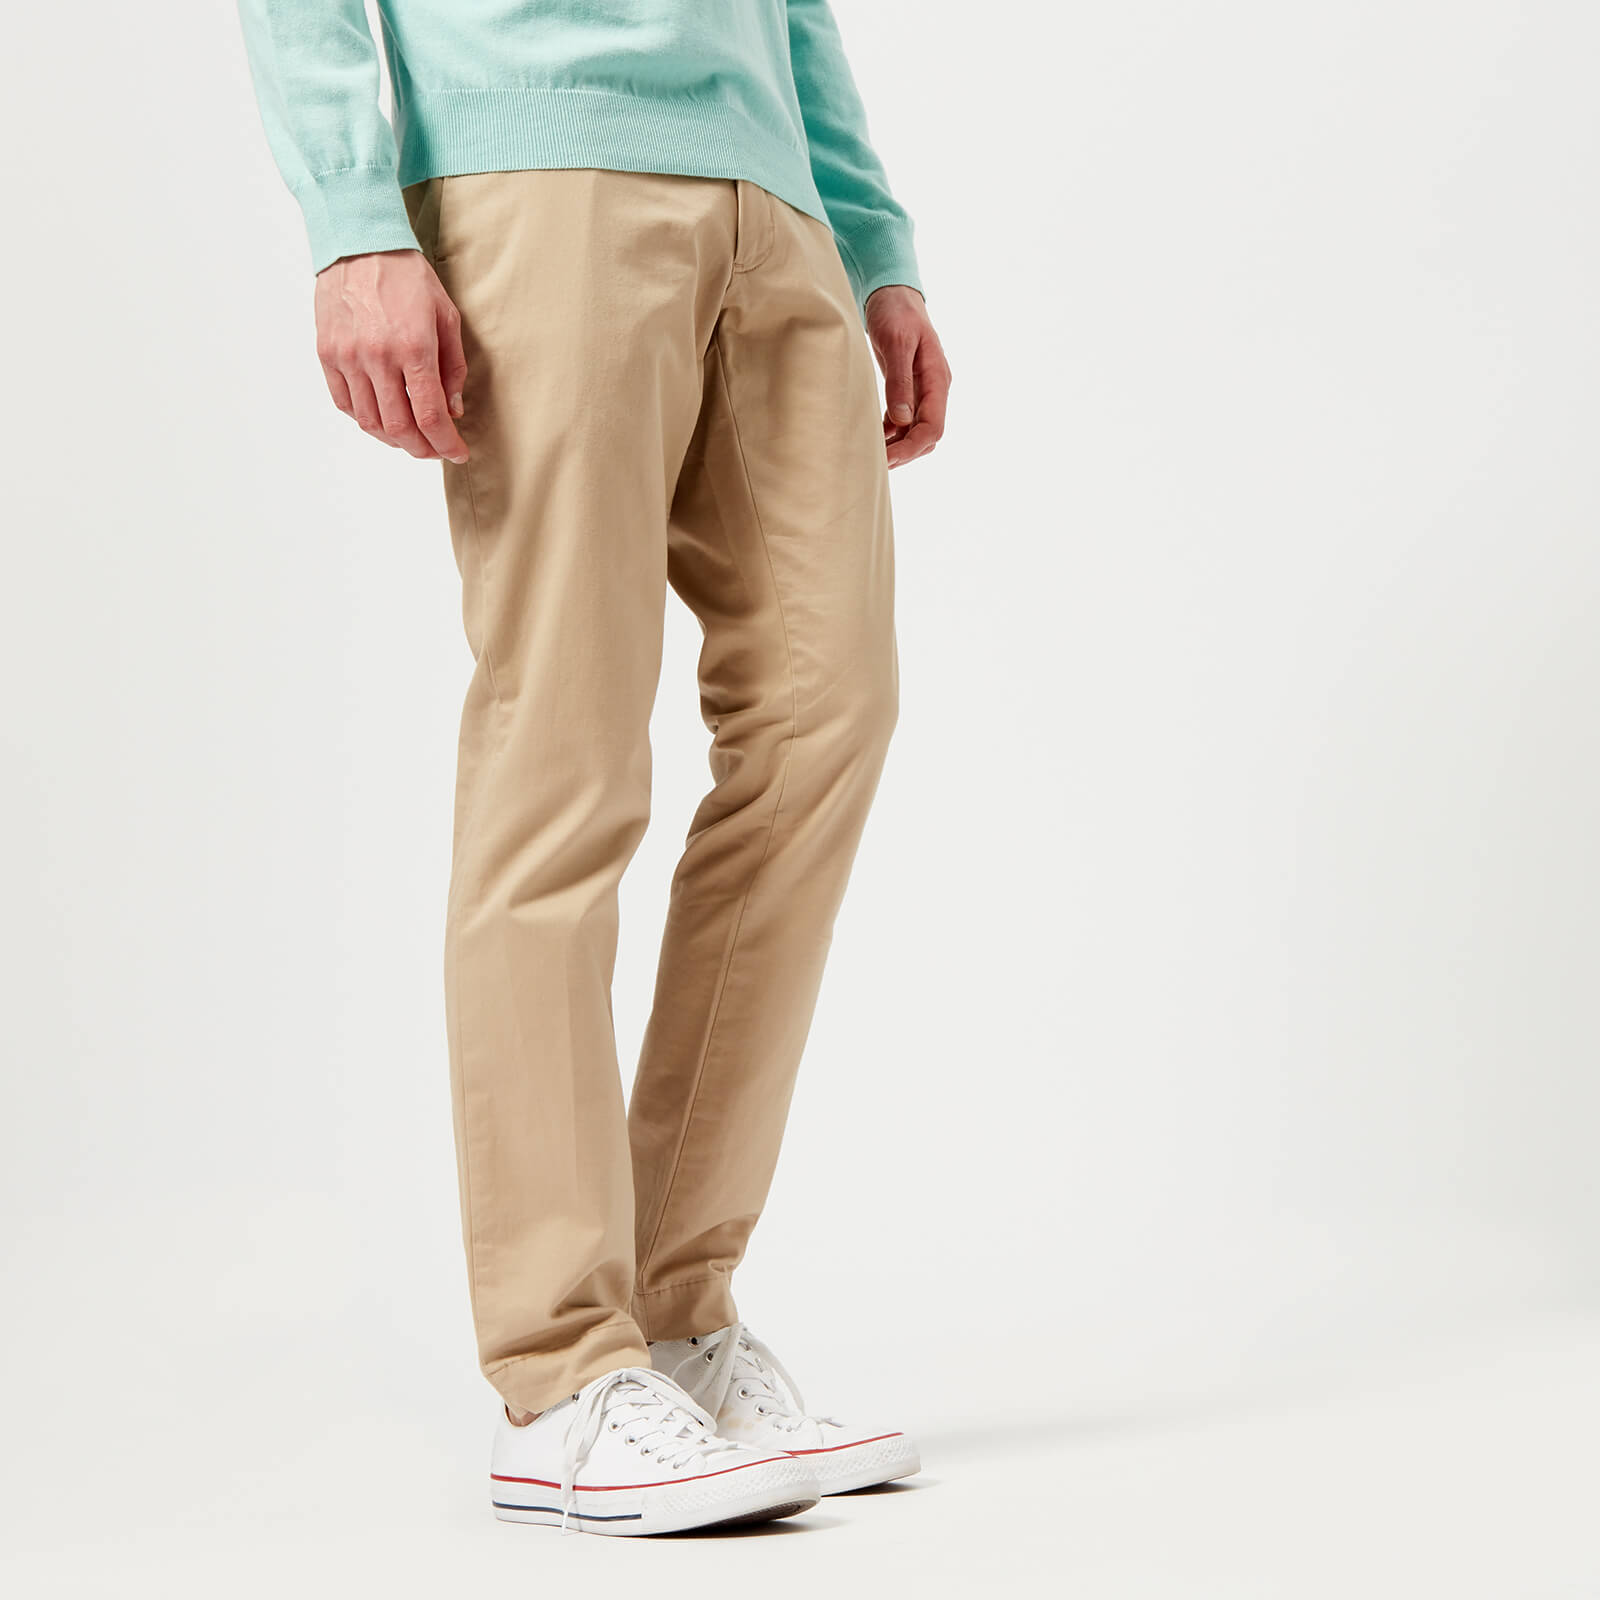 140effb2 Polo Ralph Lauren Men's Tailored Slim Fit Lightweight Military Chinos -  Classic Khaki - Free UK Delivery over £50